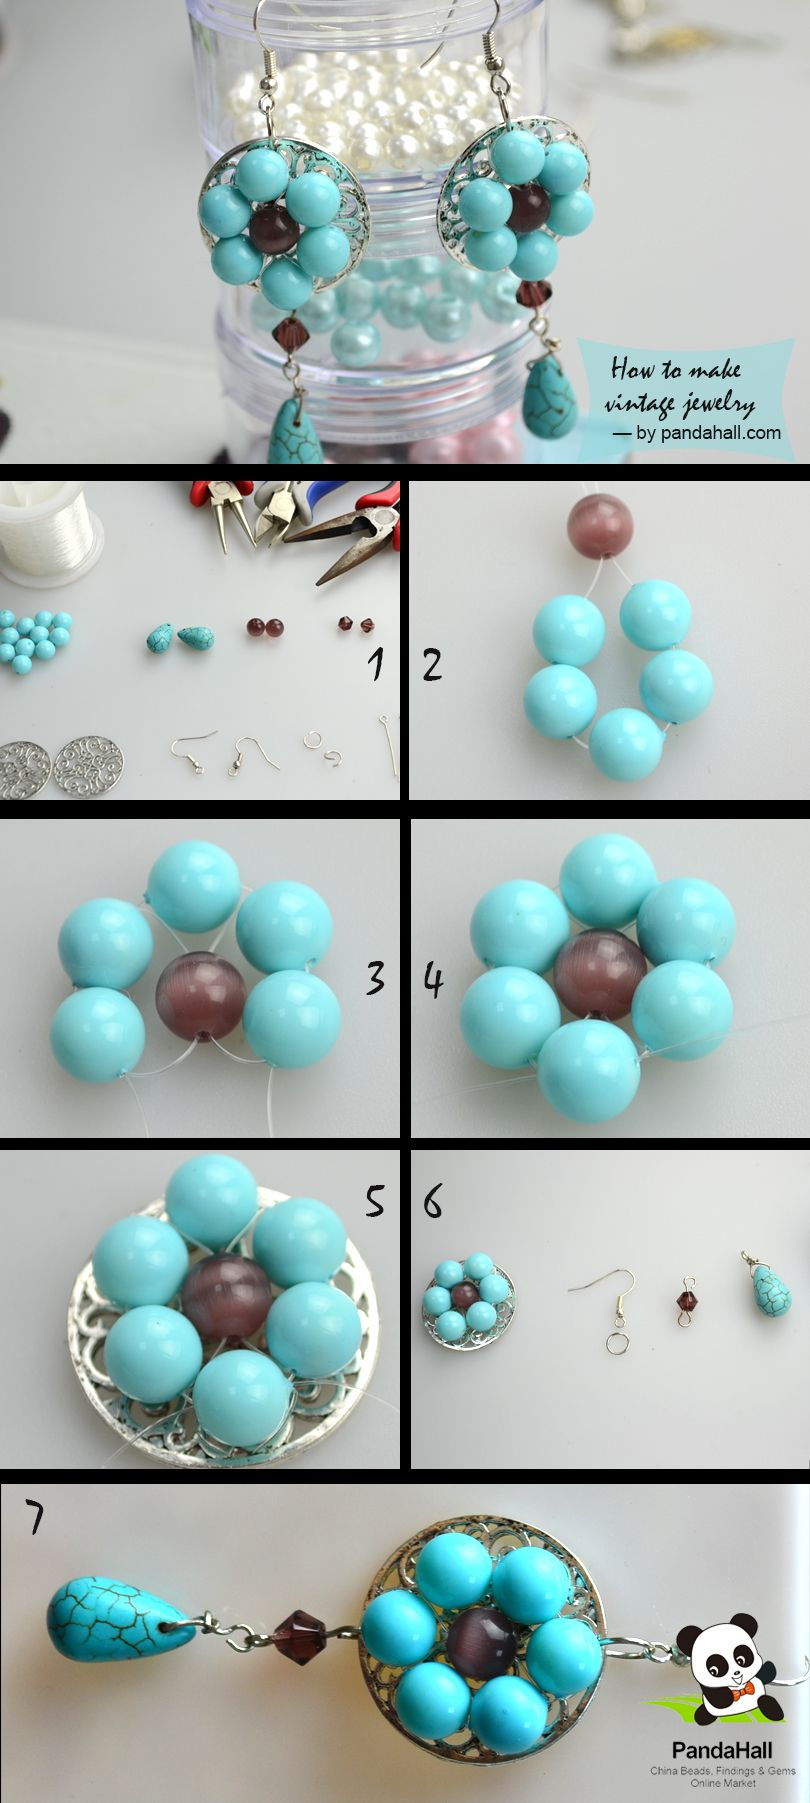 vintage jewelry making process, like flowers | DIY | Pinterest ...